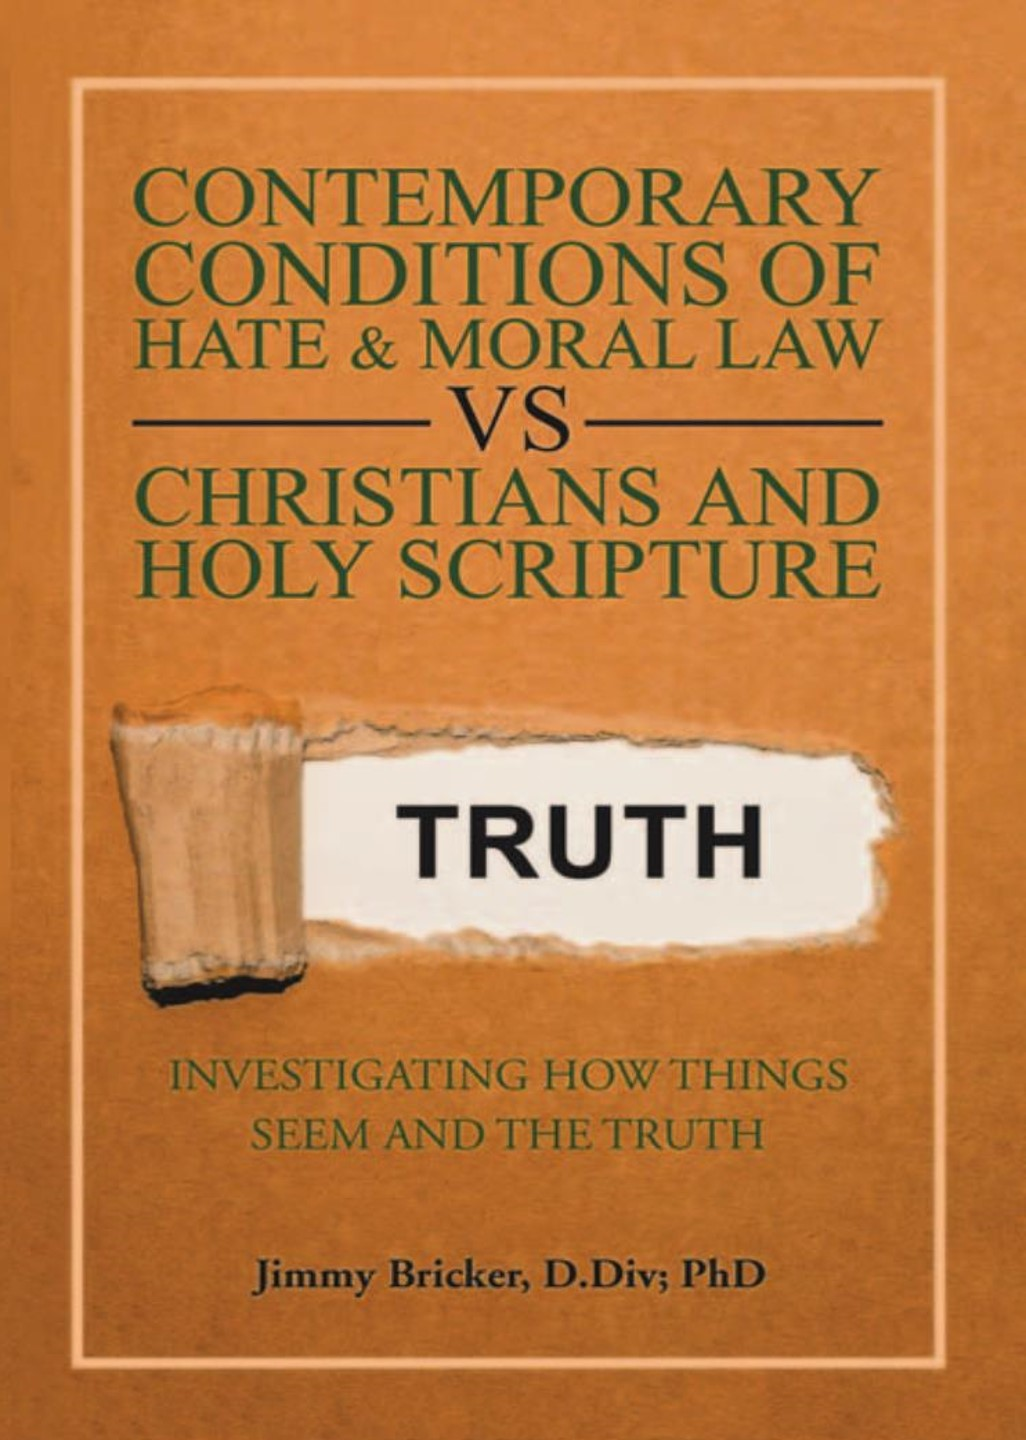 Christian Book Review Listings:  Contemporary Conditions Of Hate & Moral Law VS Christians and Holy Scripture